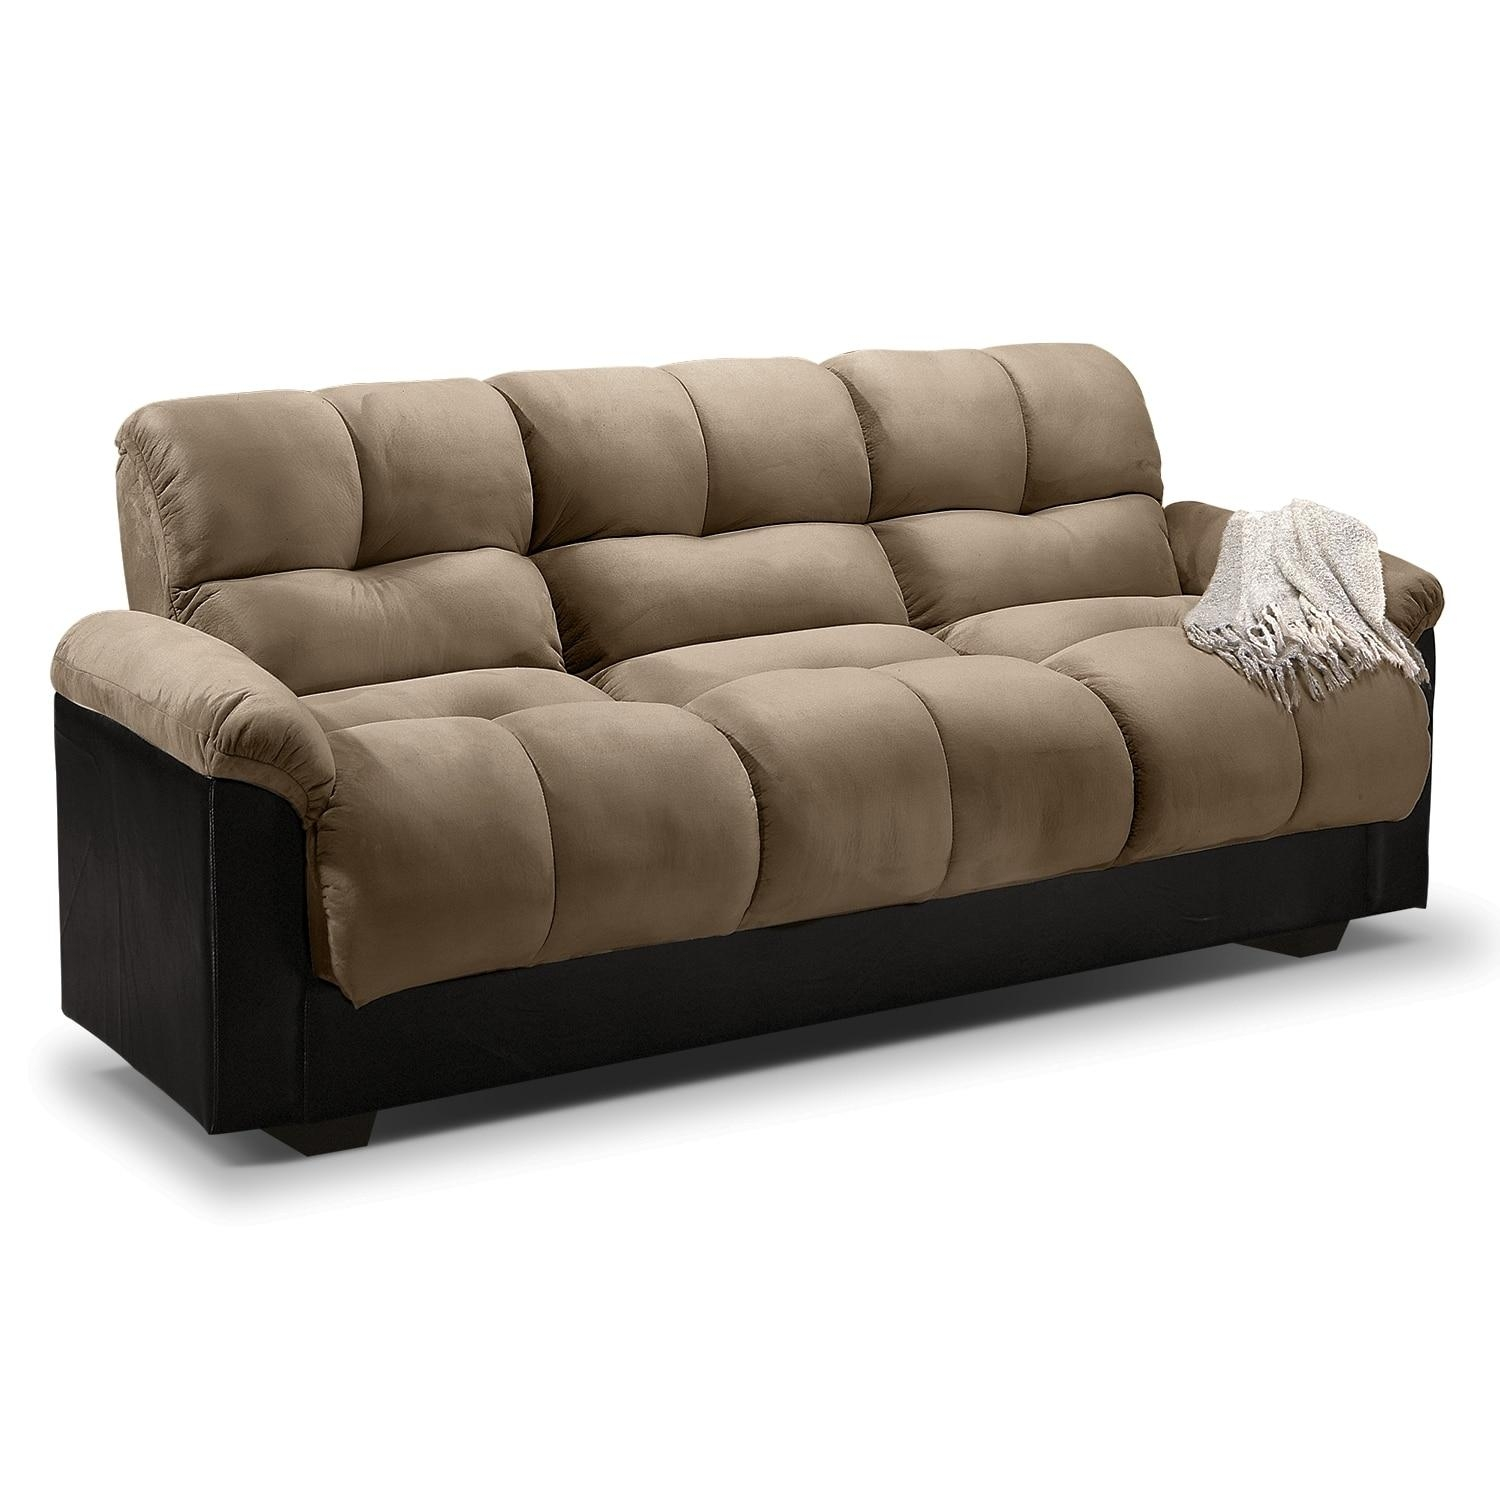 Fold Up Beds Target 20 Best Target Couch Beds Sofa Ideas